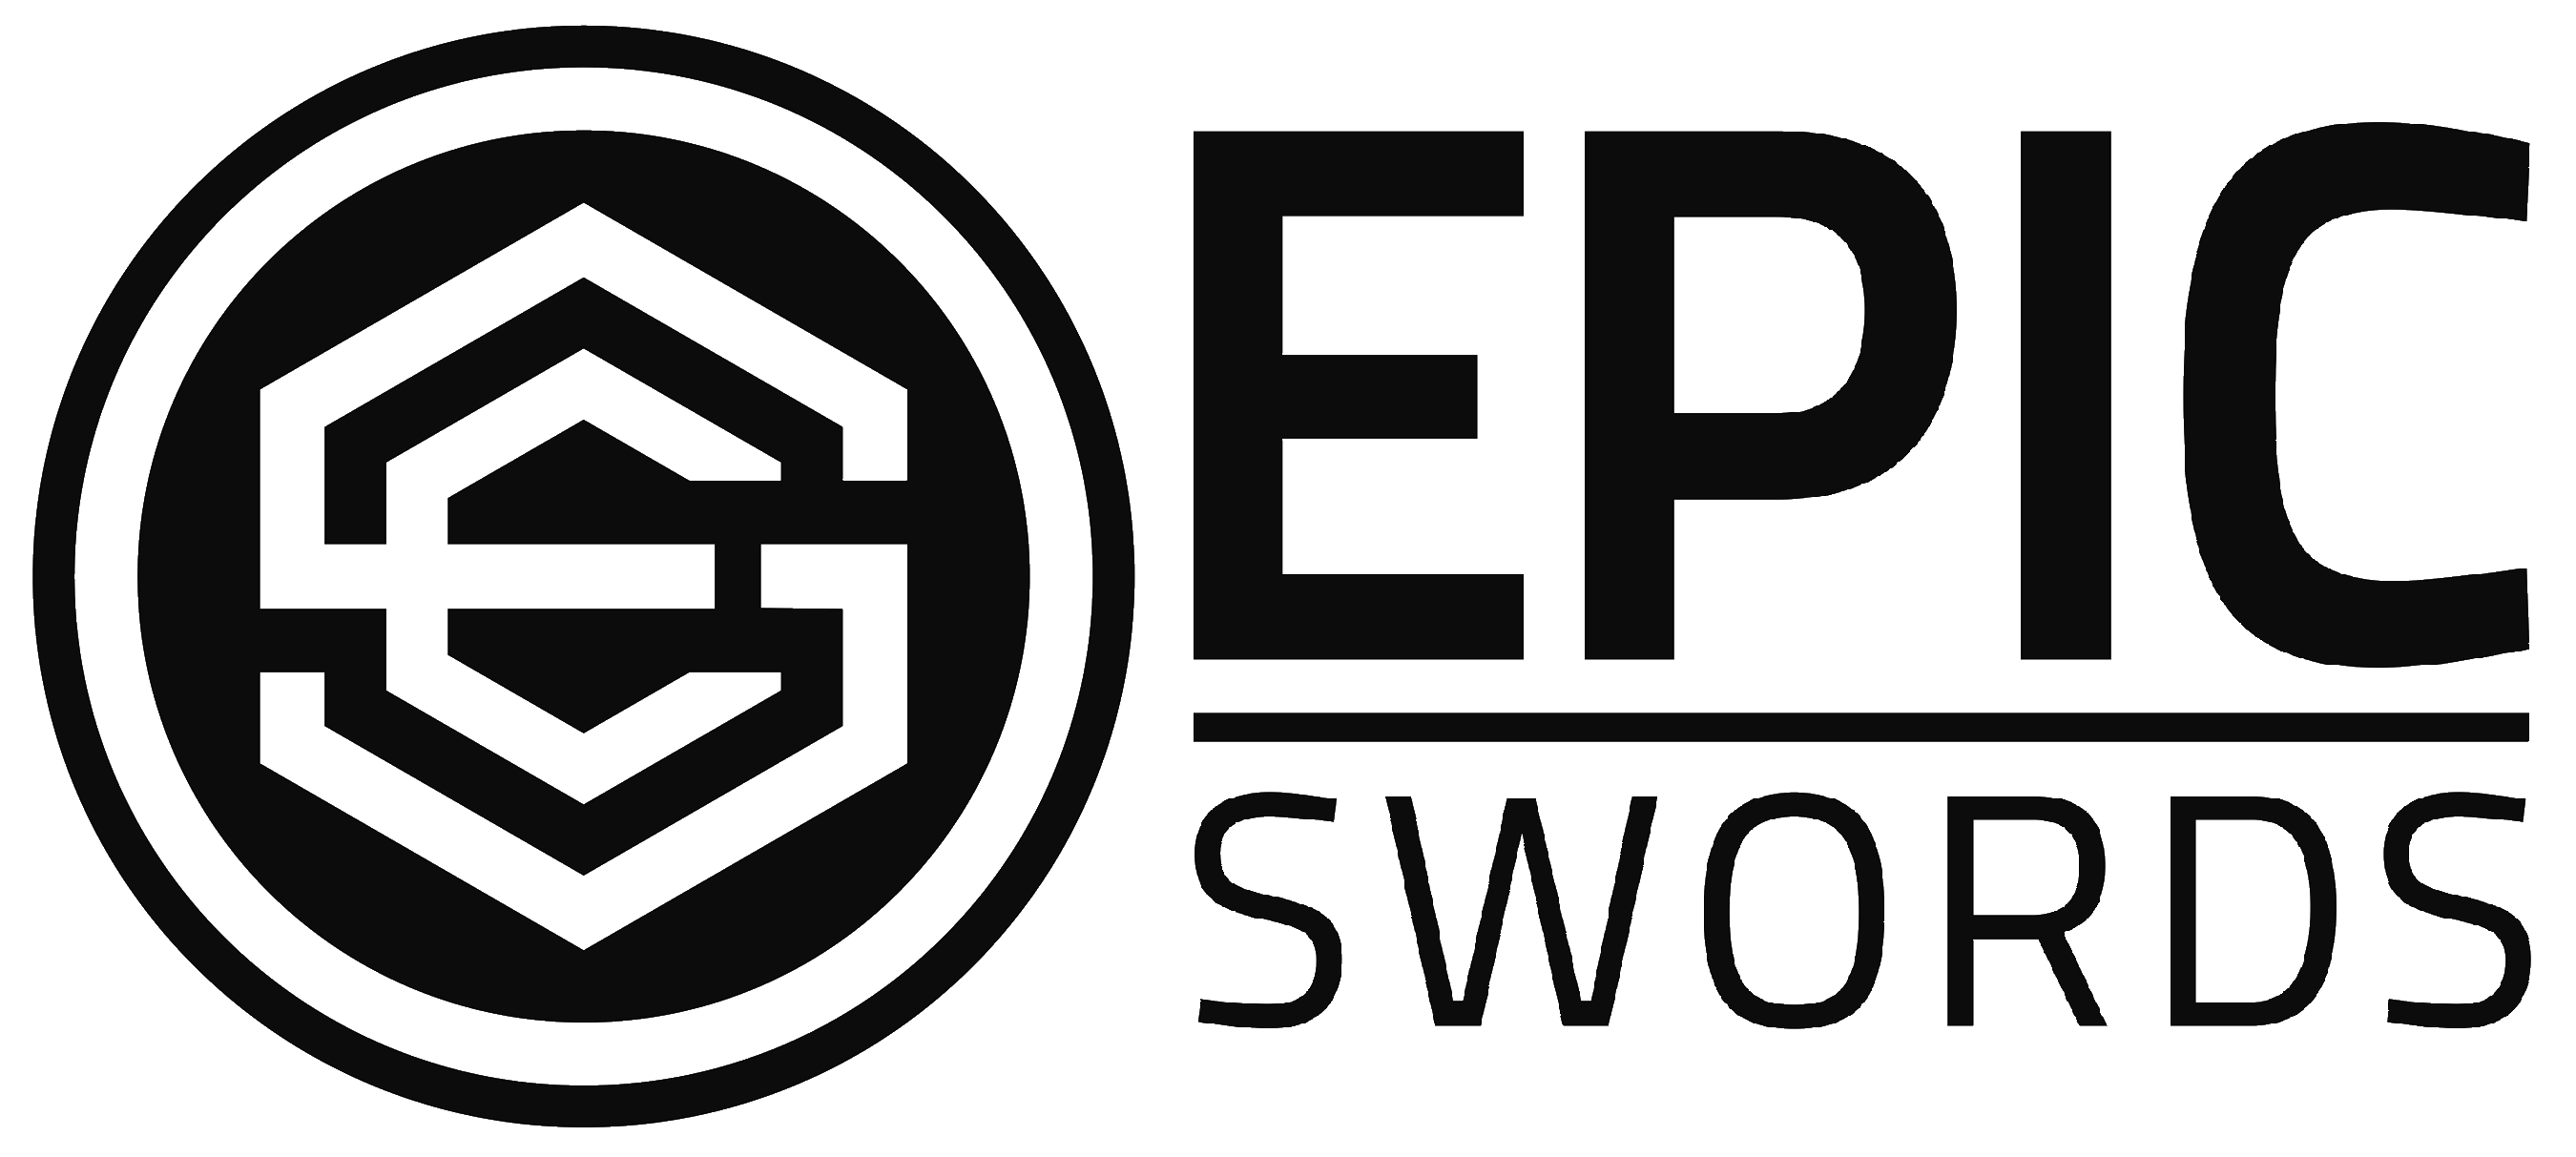 EpicSwords.de